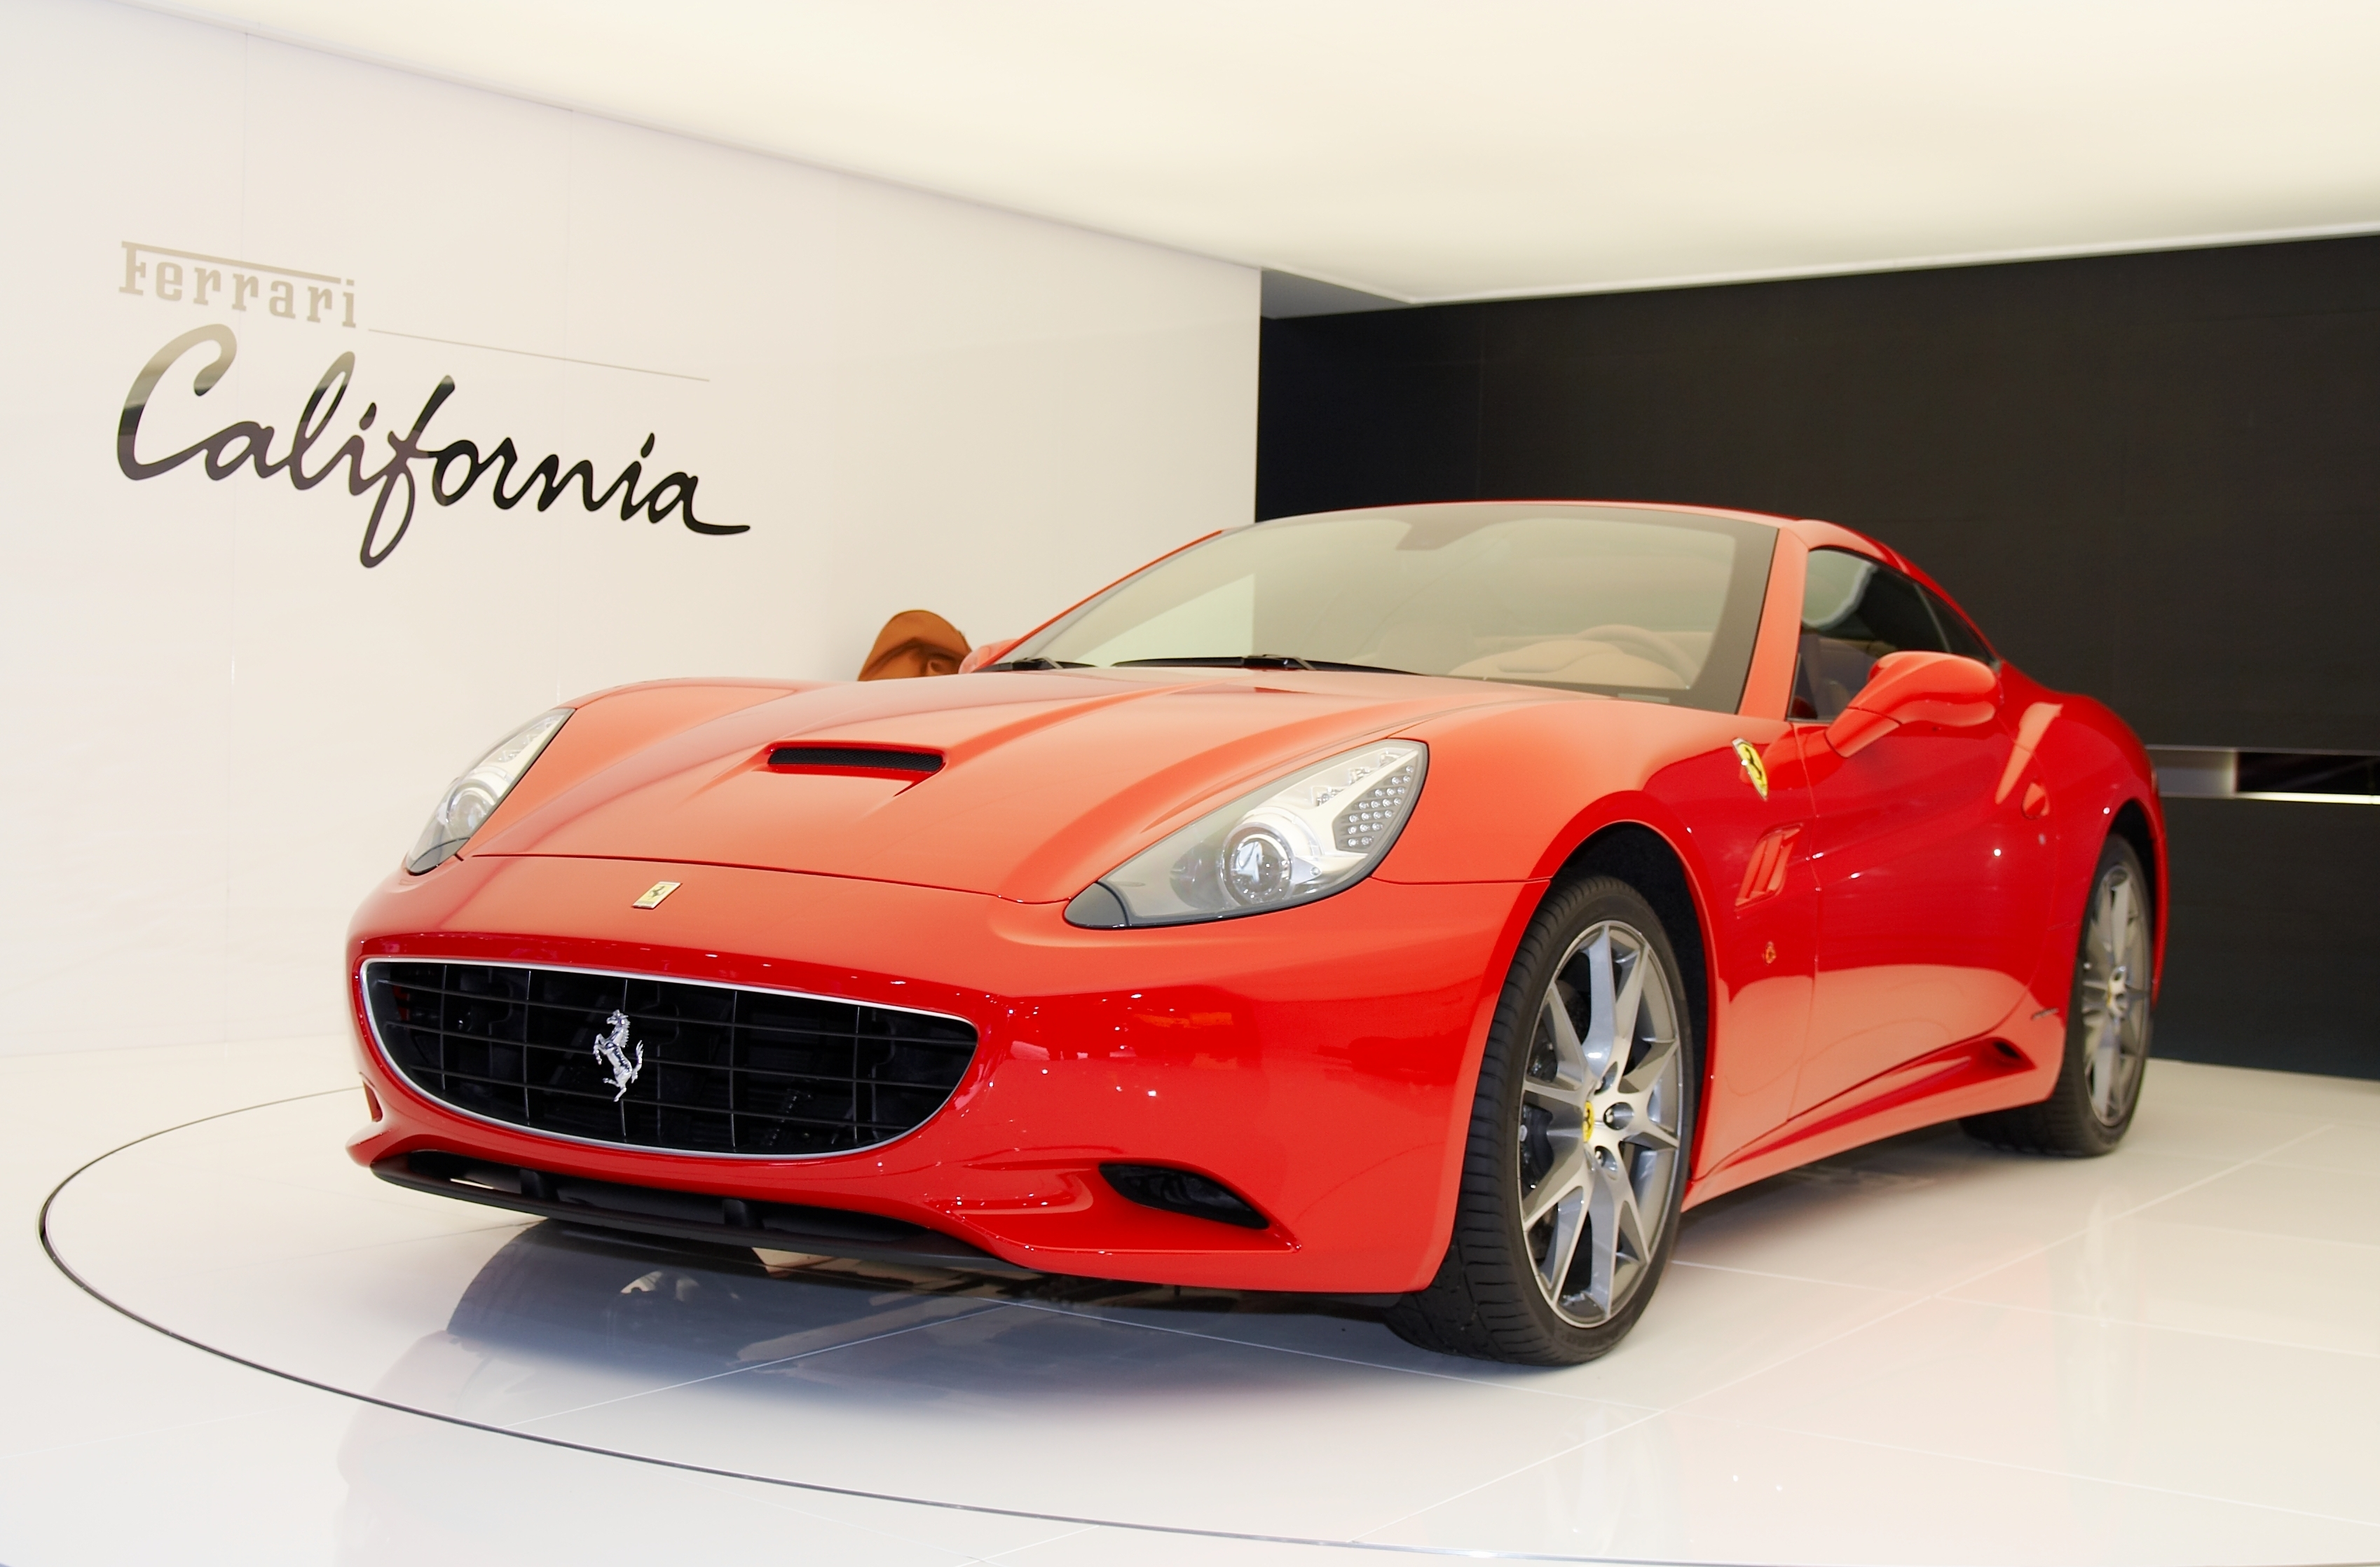 PARIS, FRANCE - OCTOBER 02: PARIS MOTOR SHOW ON OCTOBER 02, 2008, SHOWING FERRARI CALIFORNIA, FRONT VIEW BY MAKSIM TOOME